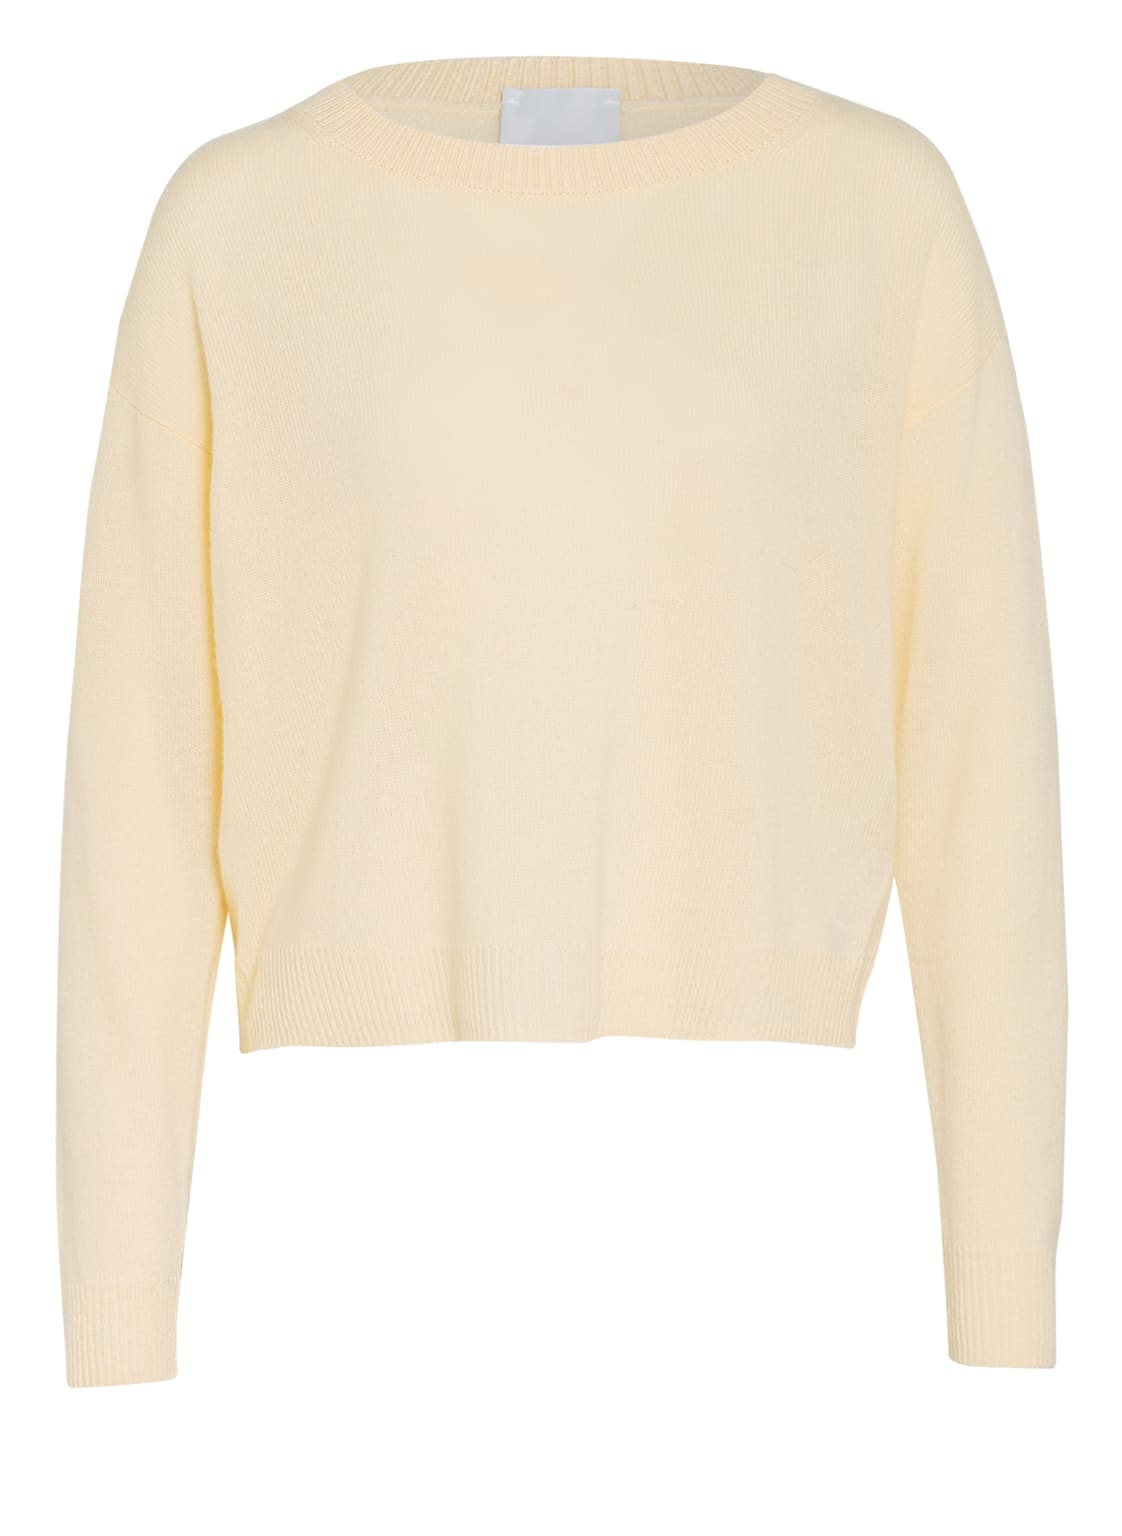 Image of Allude Cashmere-Pullover gelb